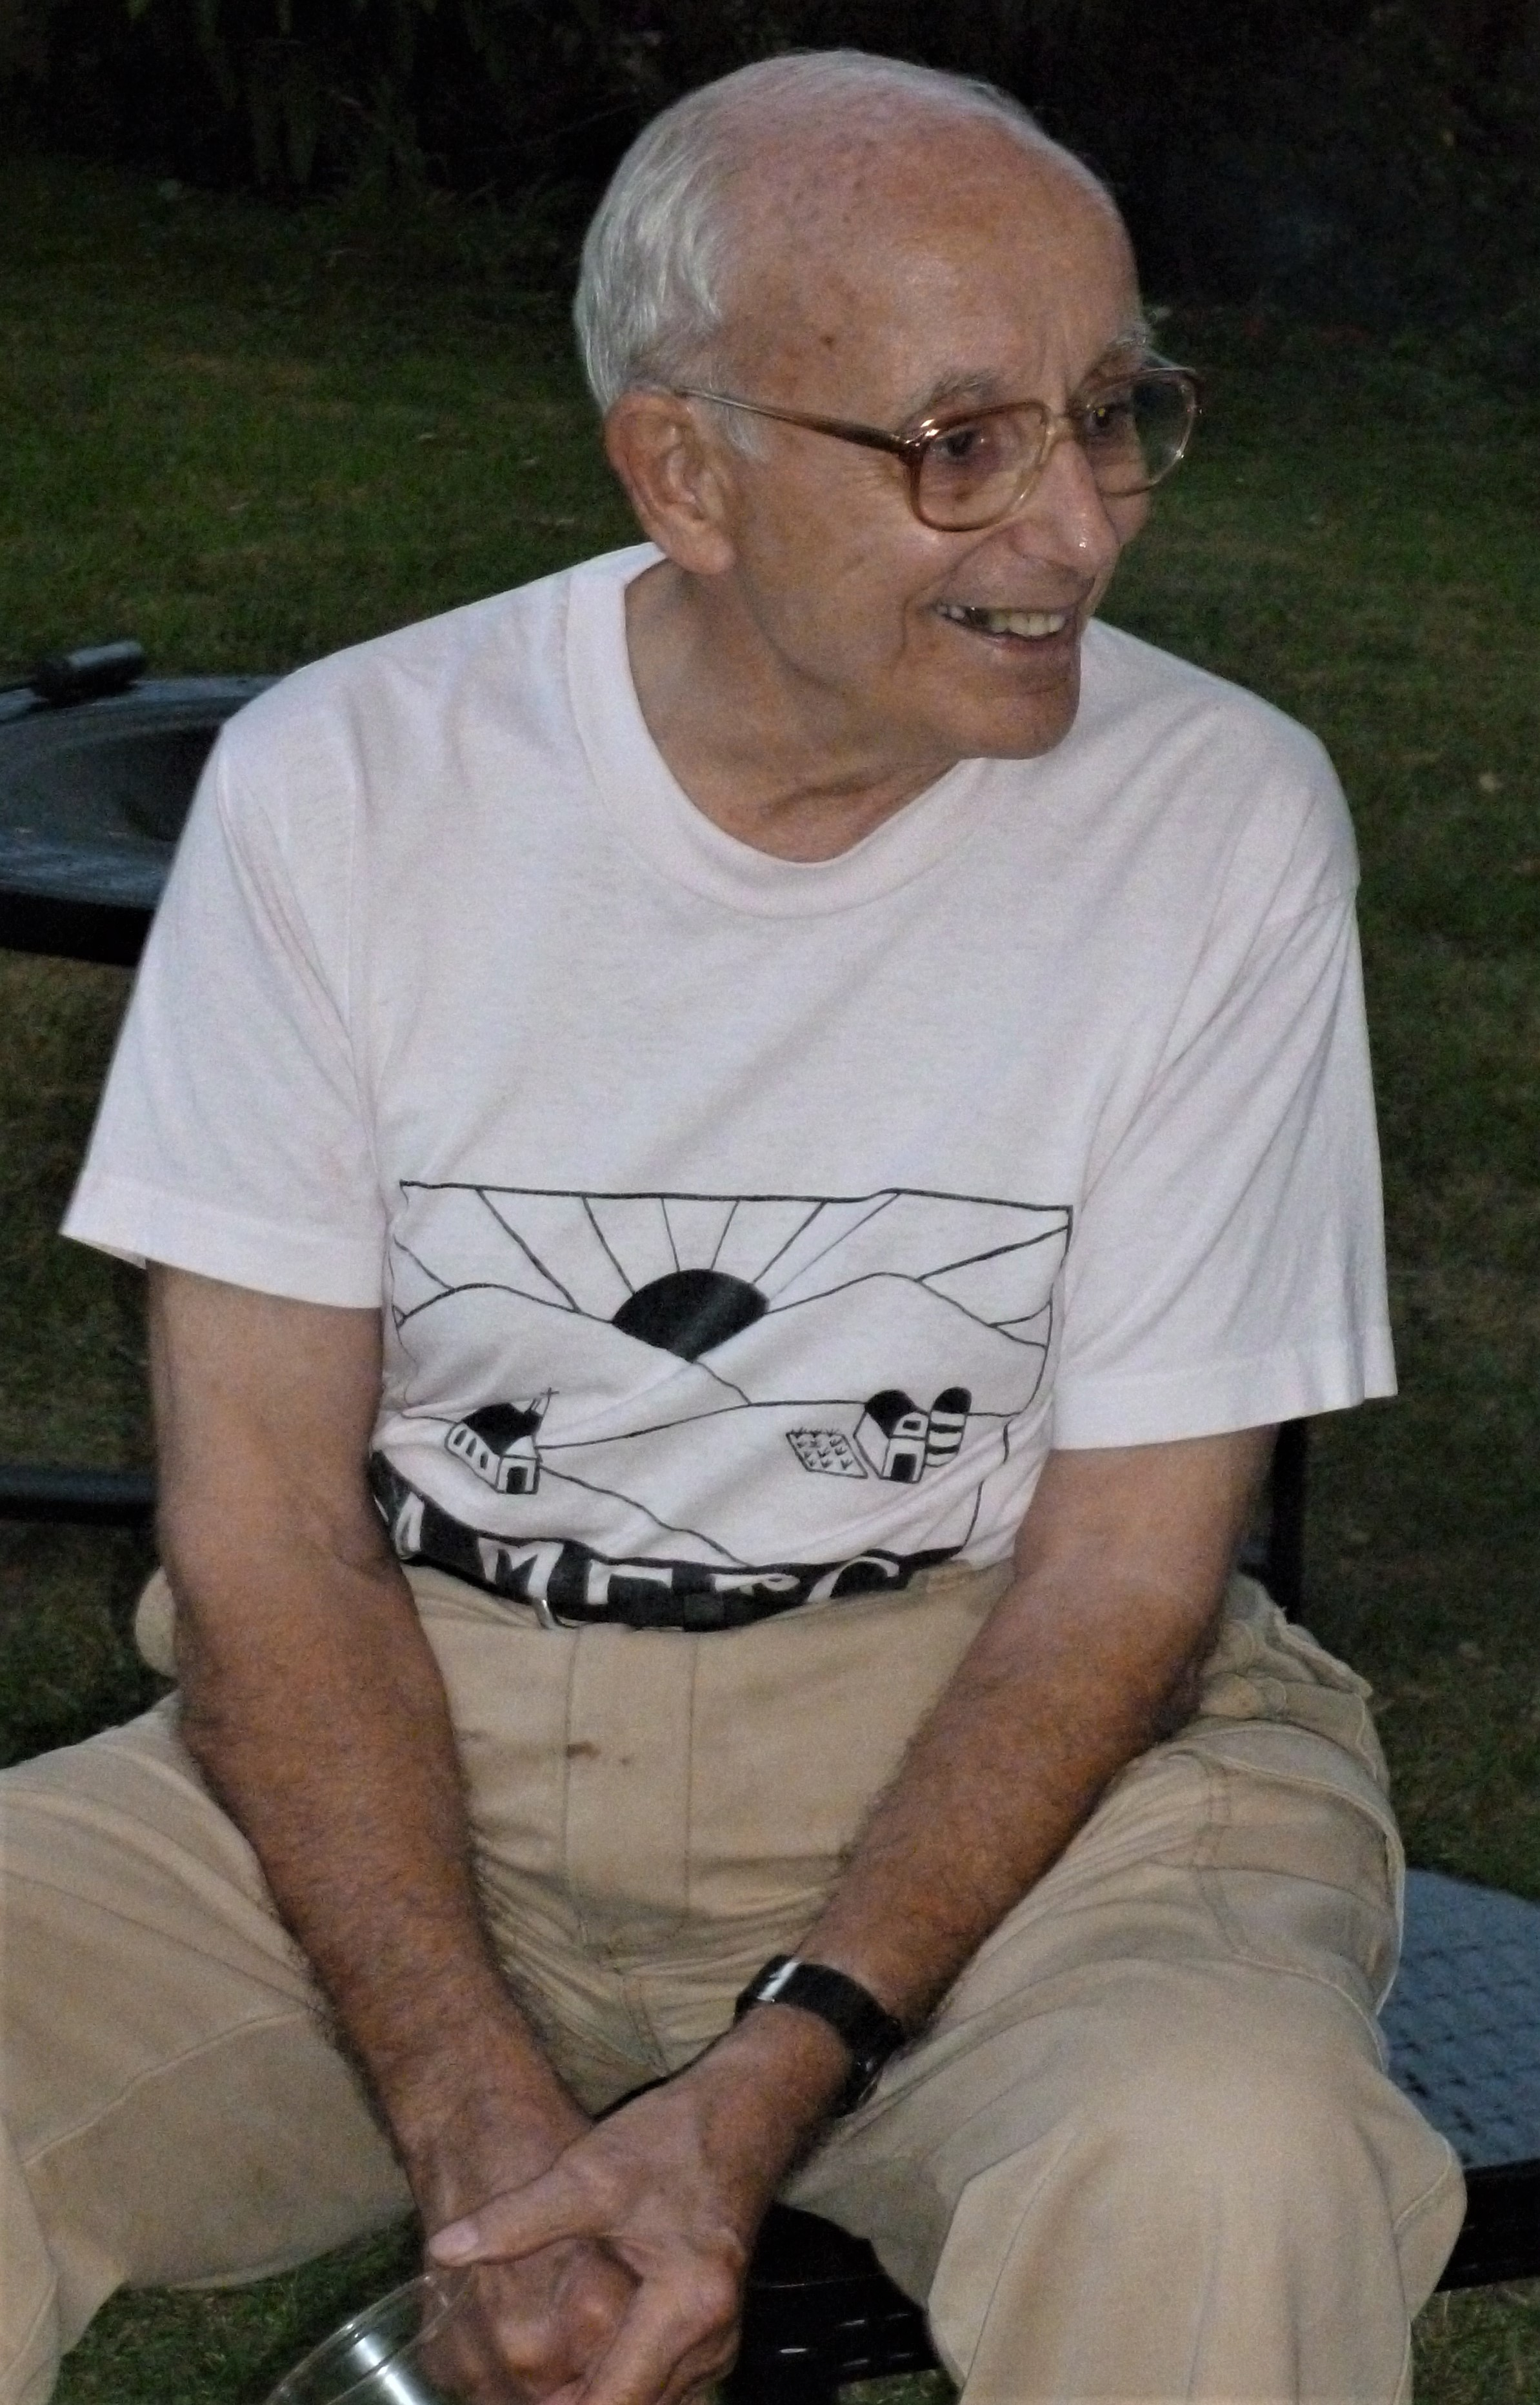 Dad at a neighborhood gathering in Amesville soon after Annika was born in 2011.